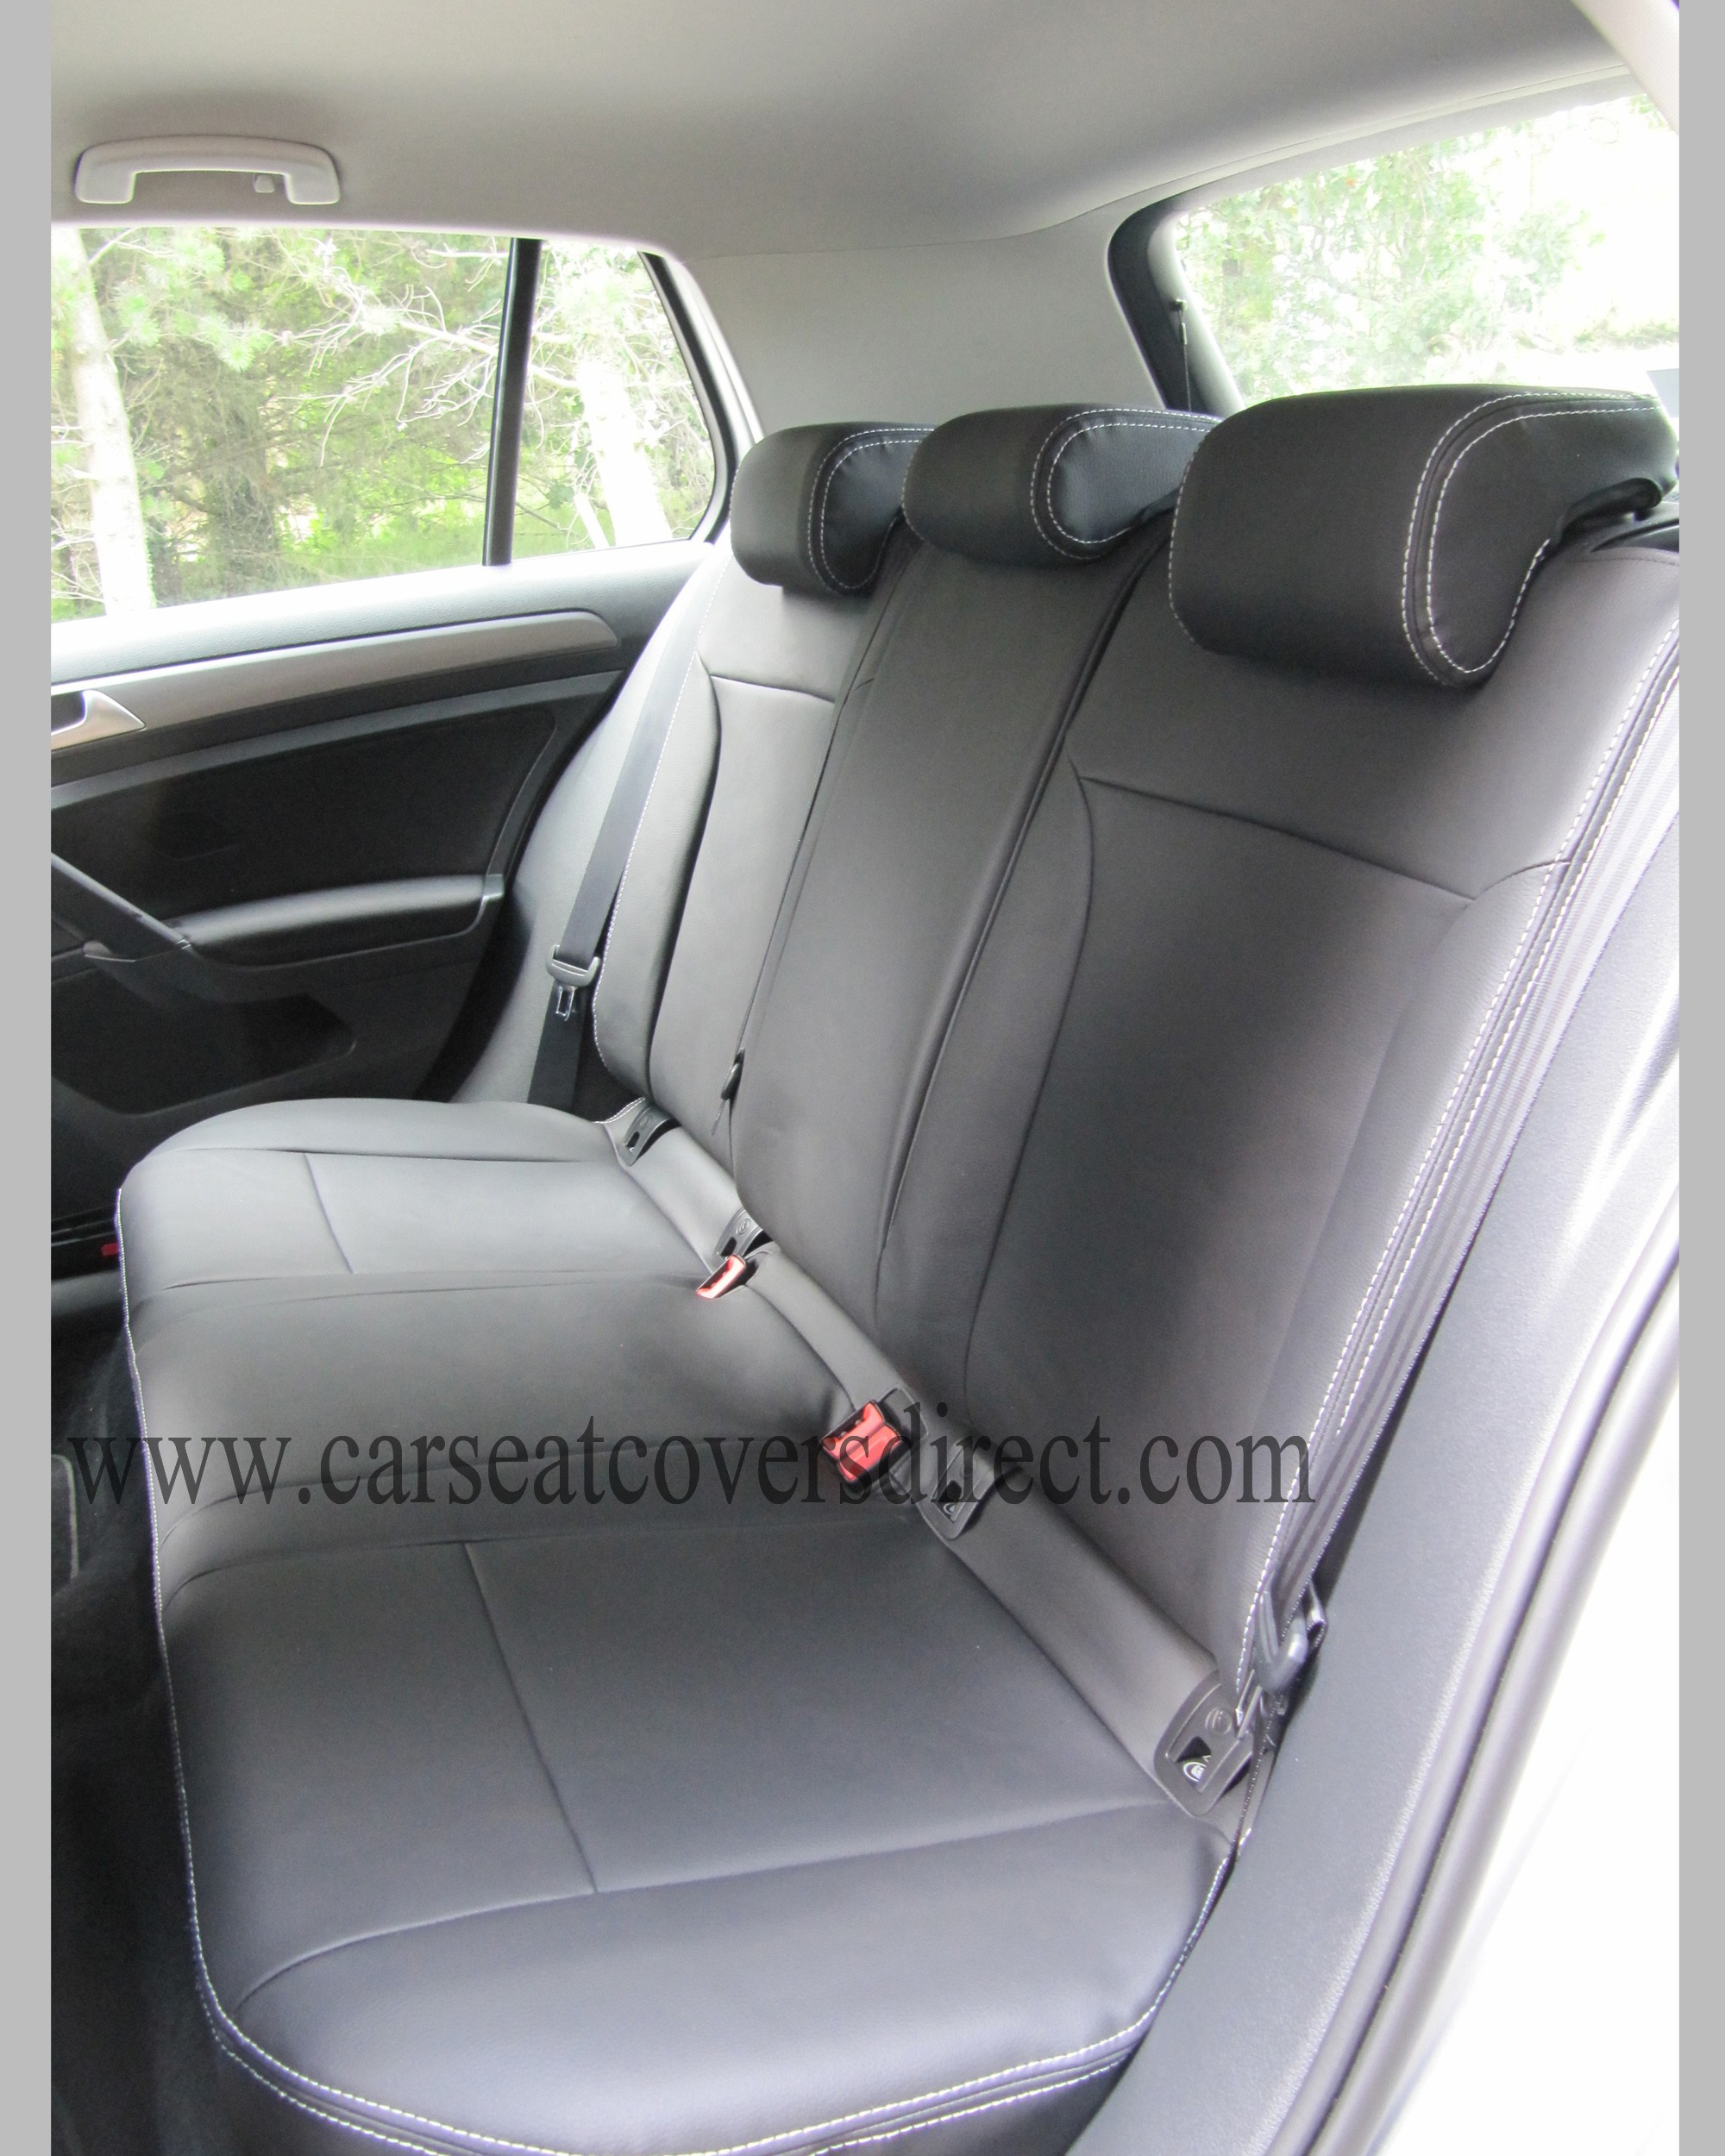 volkswagen vw golf mk7 seat covers custom car seat covers custom tailored seat covers car. Black Bedroom Furniture Sets. Home Design Ideas